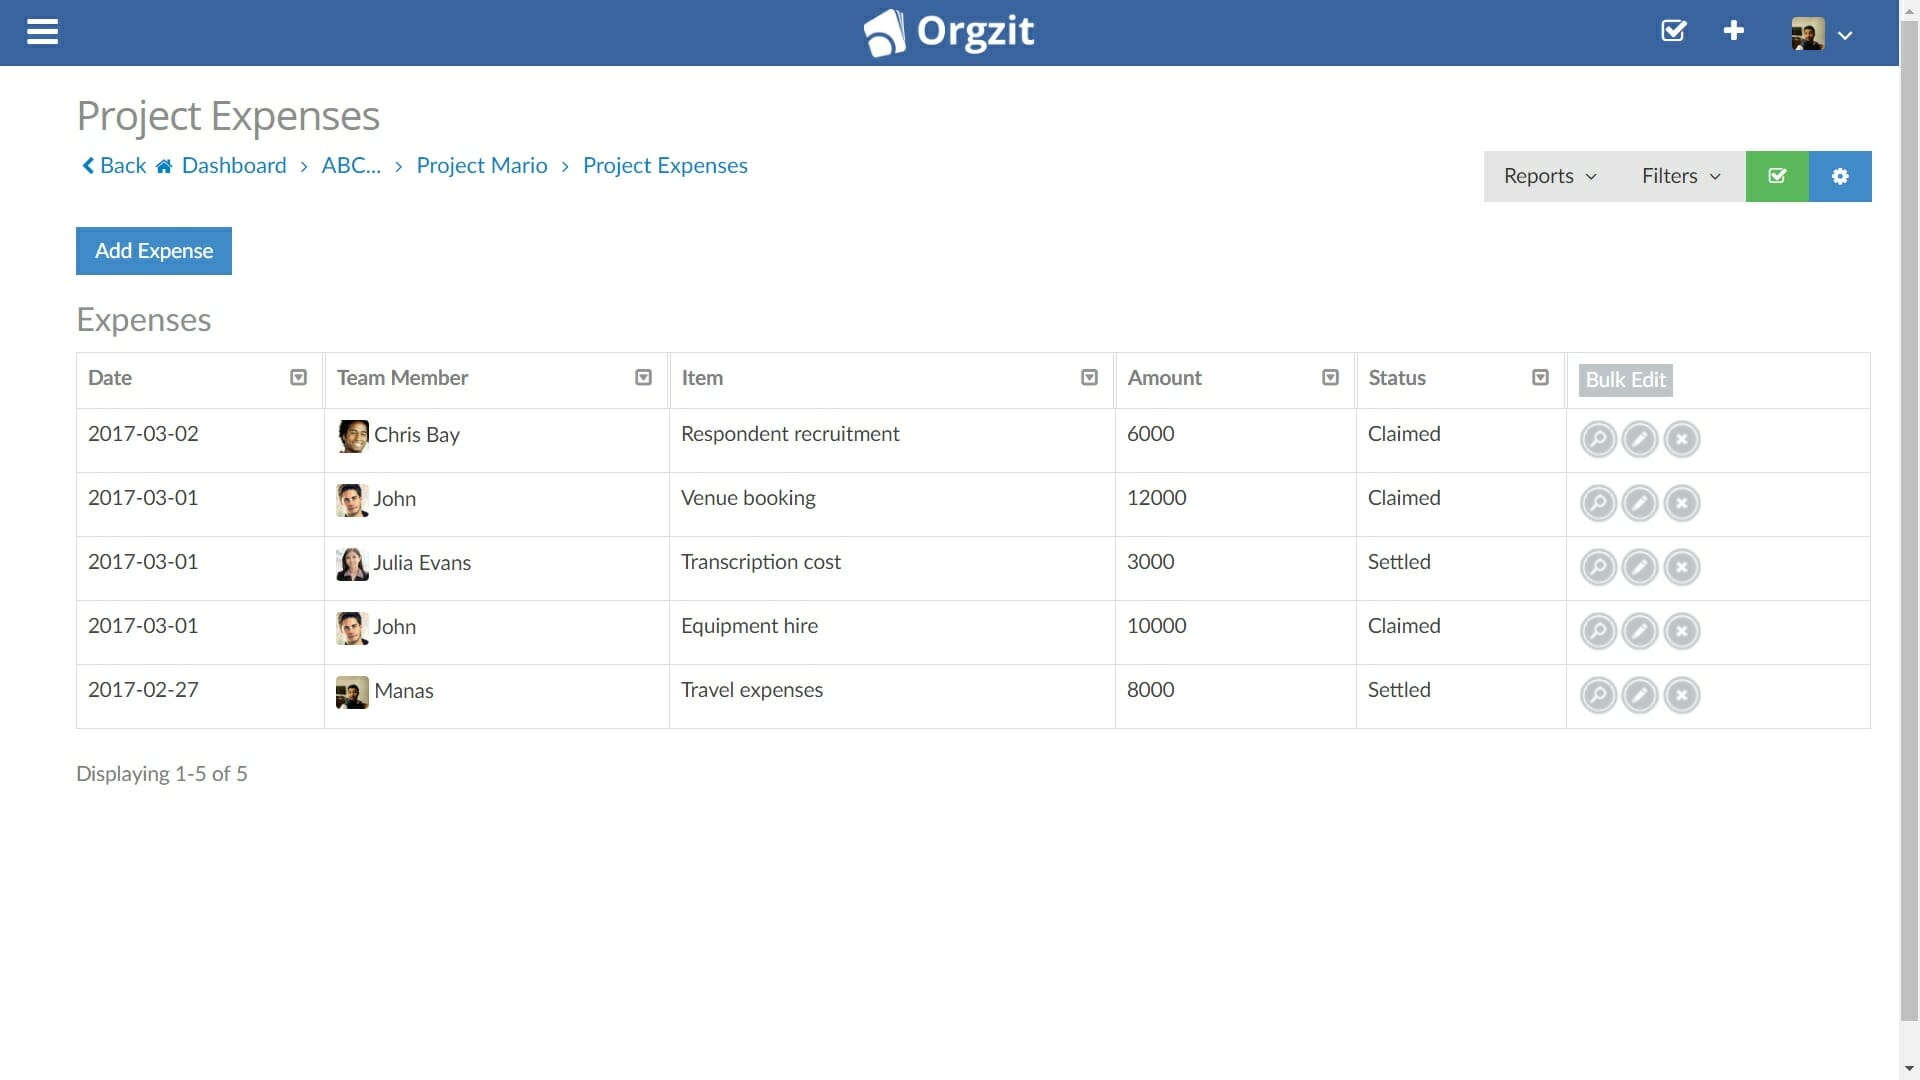 Tracking Project Expenses in Orgzit